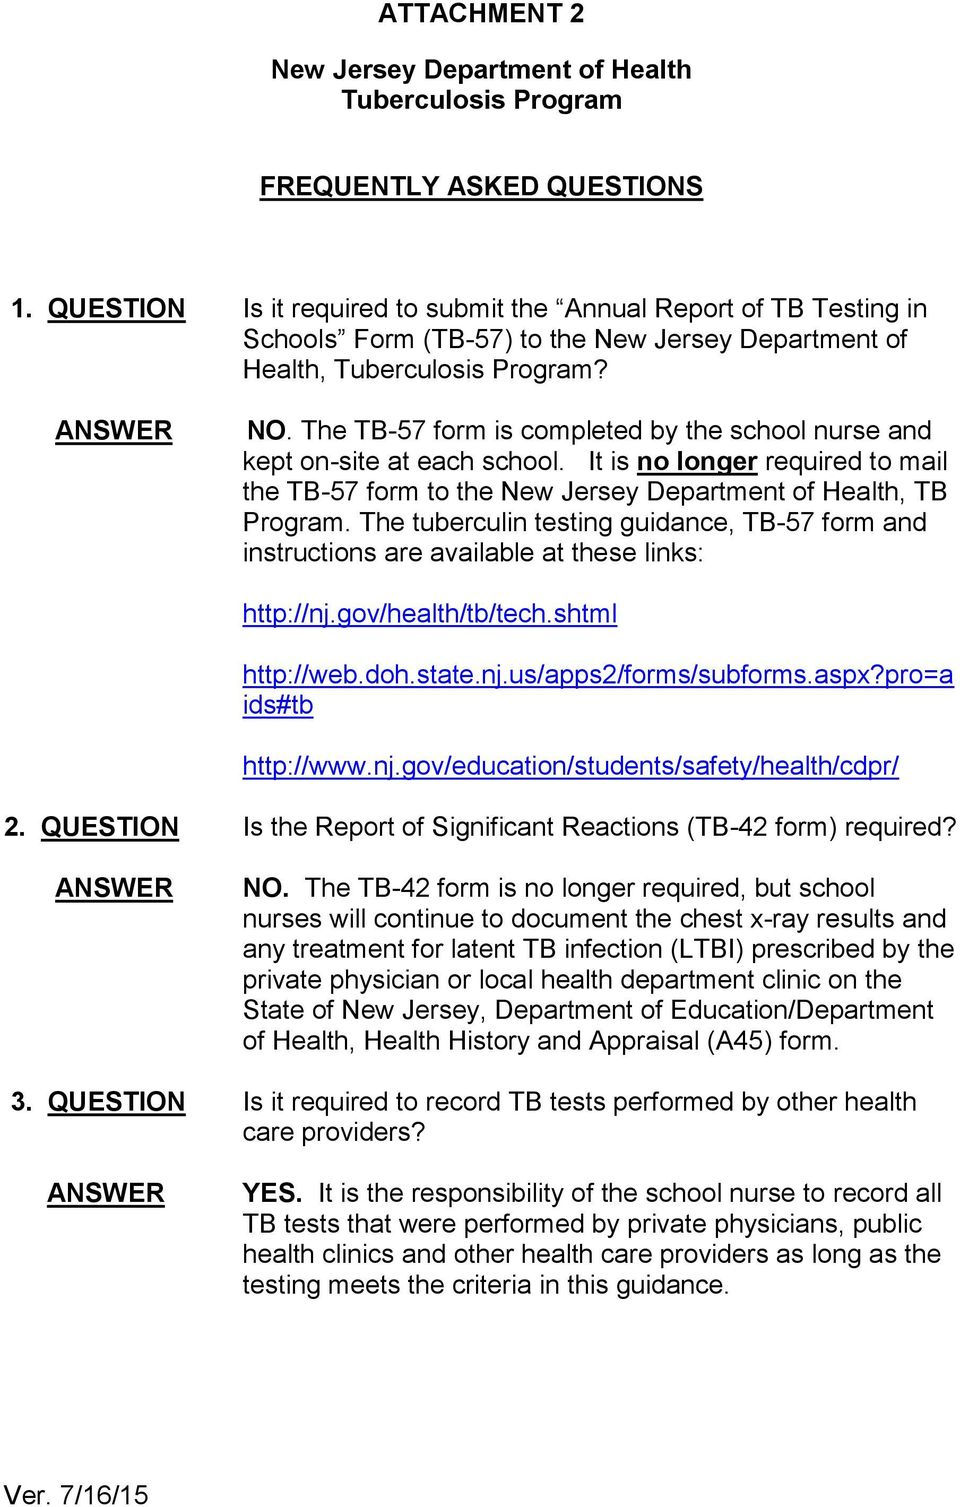 The TB-57 form is completed by the school nurse and kept on-site at each school. It is no longer required to mail the TB-57 form to the New Jersey Department of Health, TB Program.